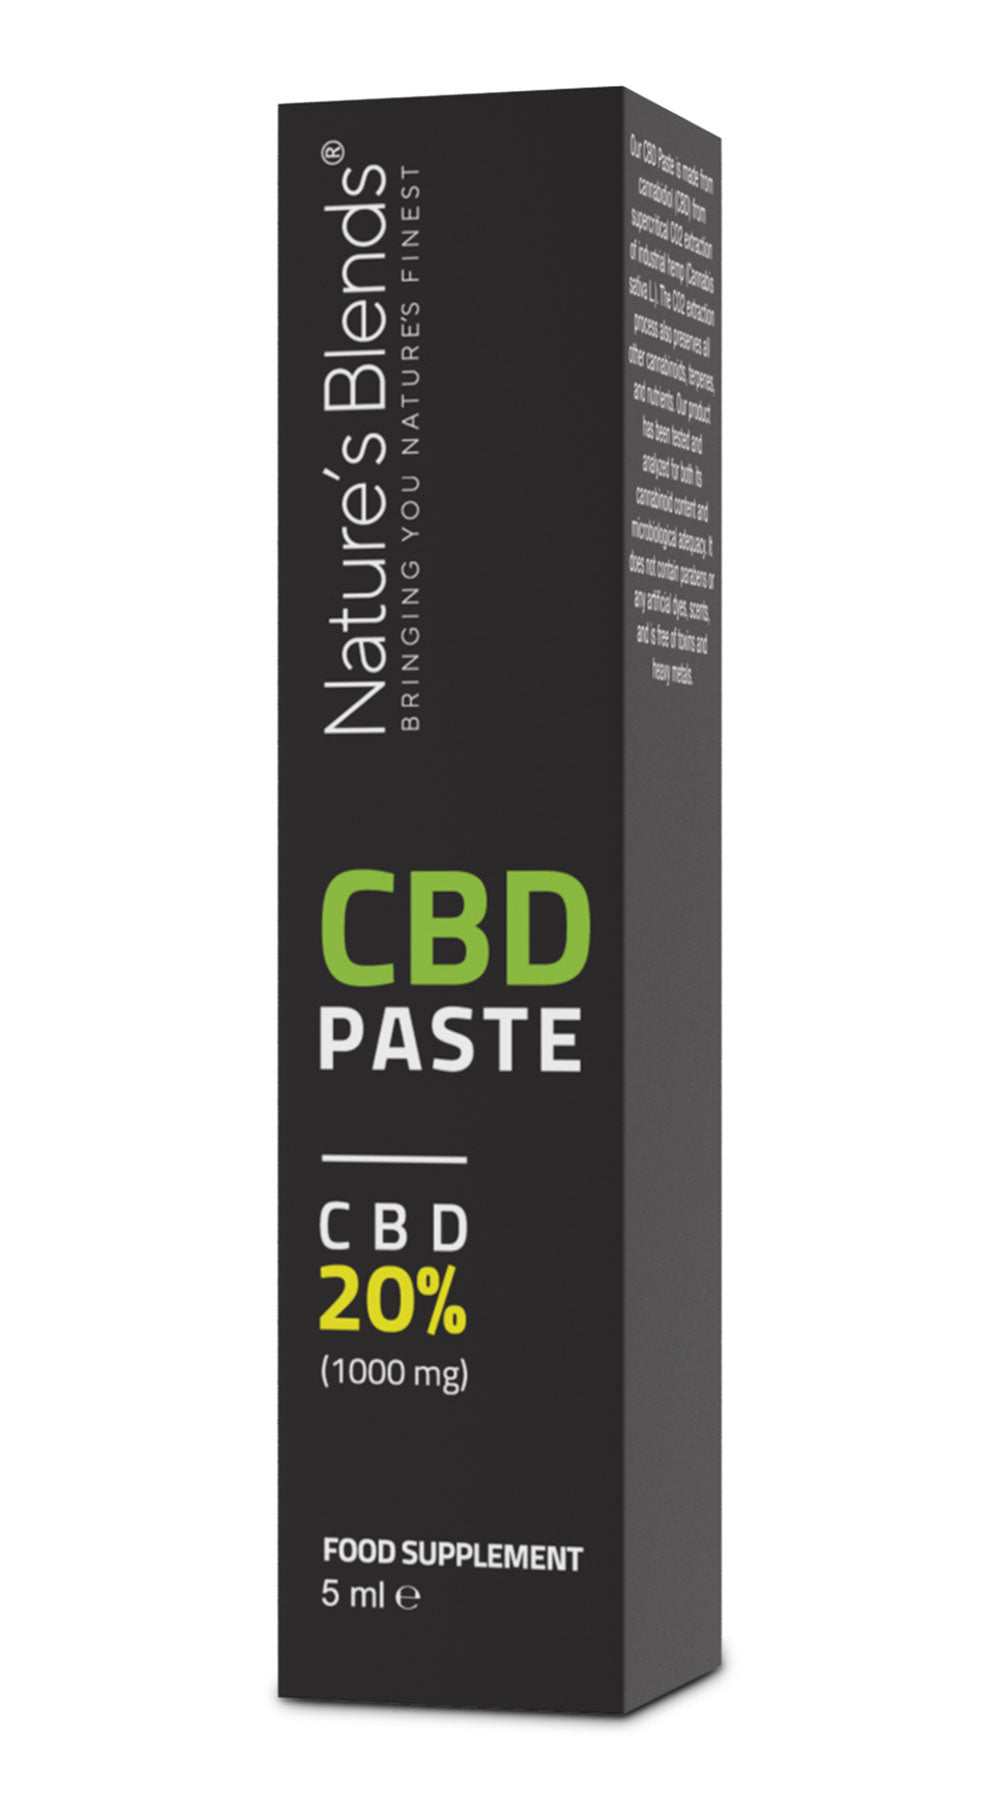 cbd hemp paste 20 percent strength mg